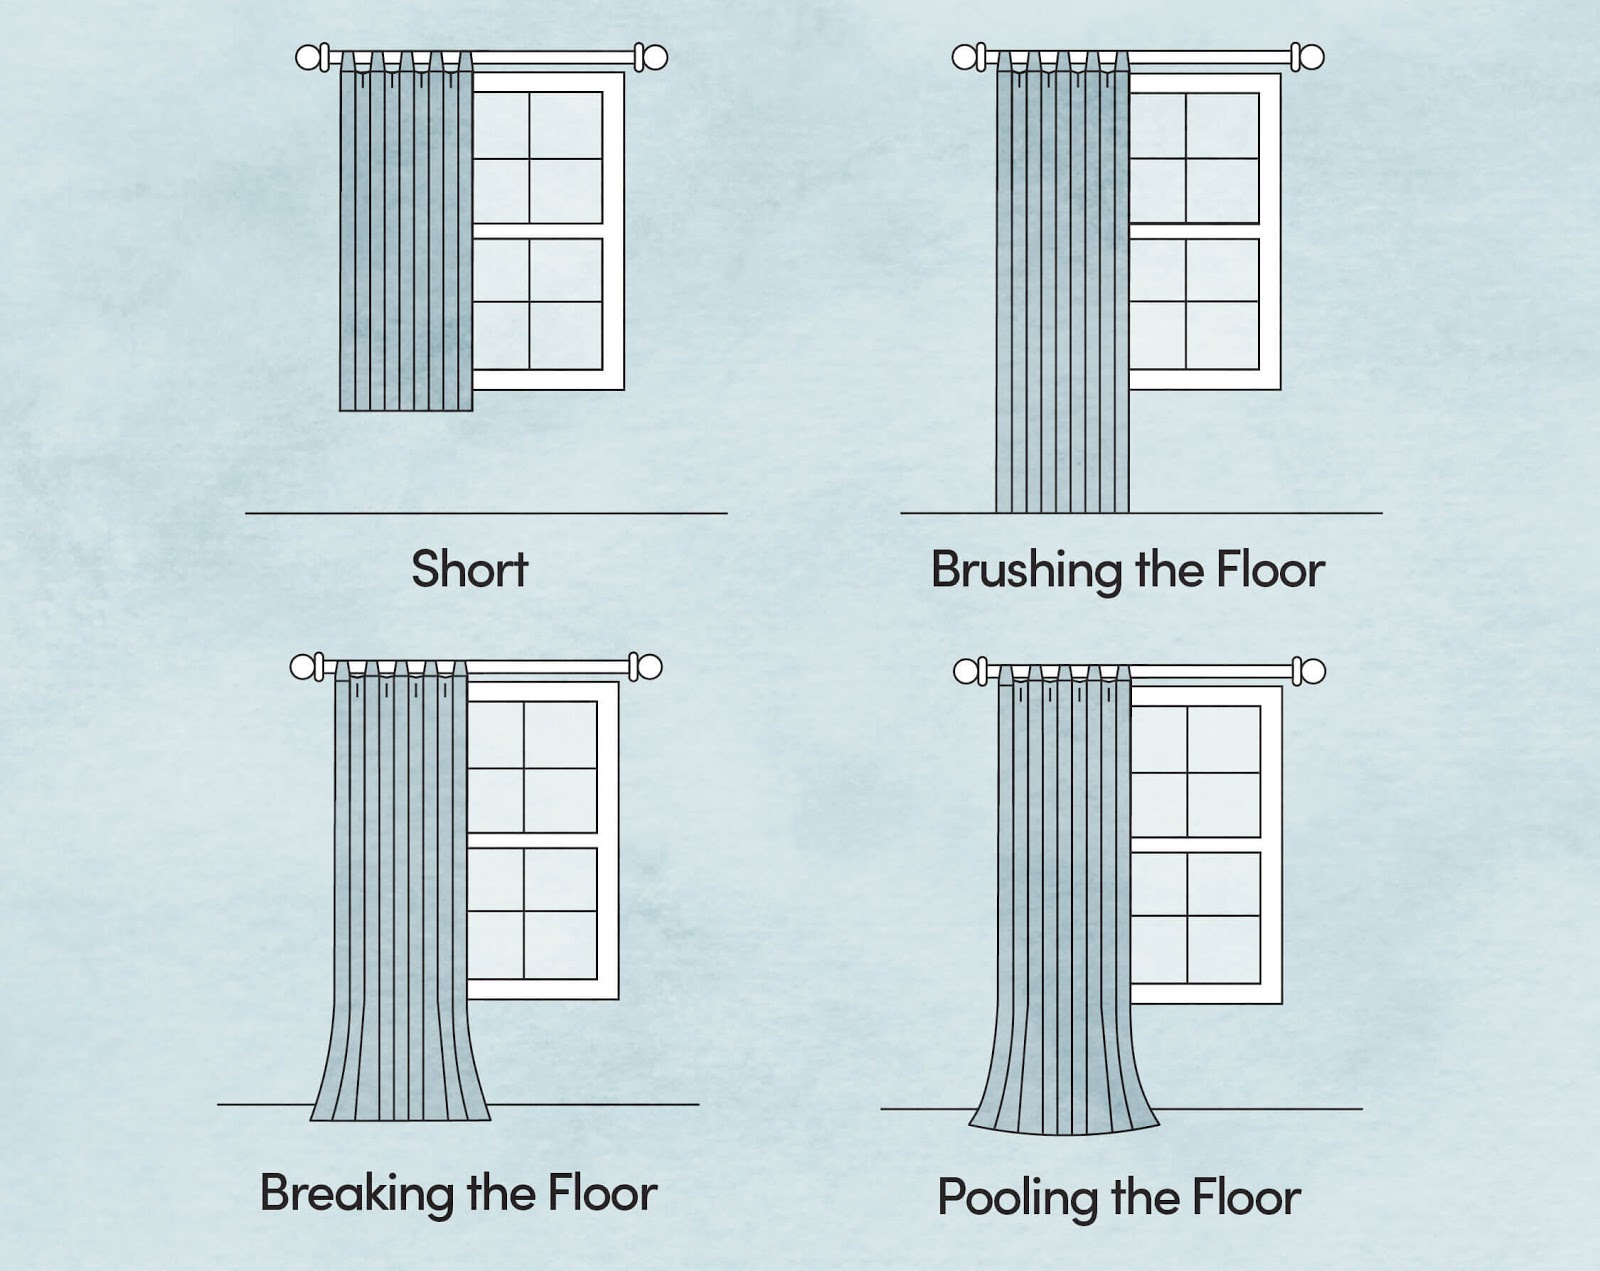 Image showing the difference between curtains that are short, brush the floor, break the floor and puddle the floor